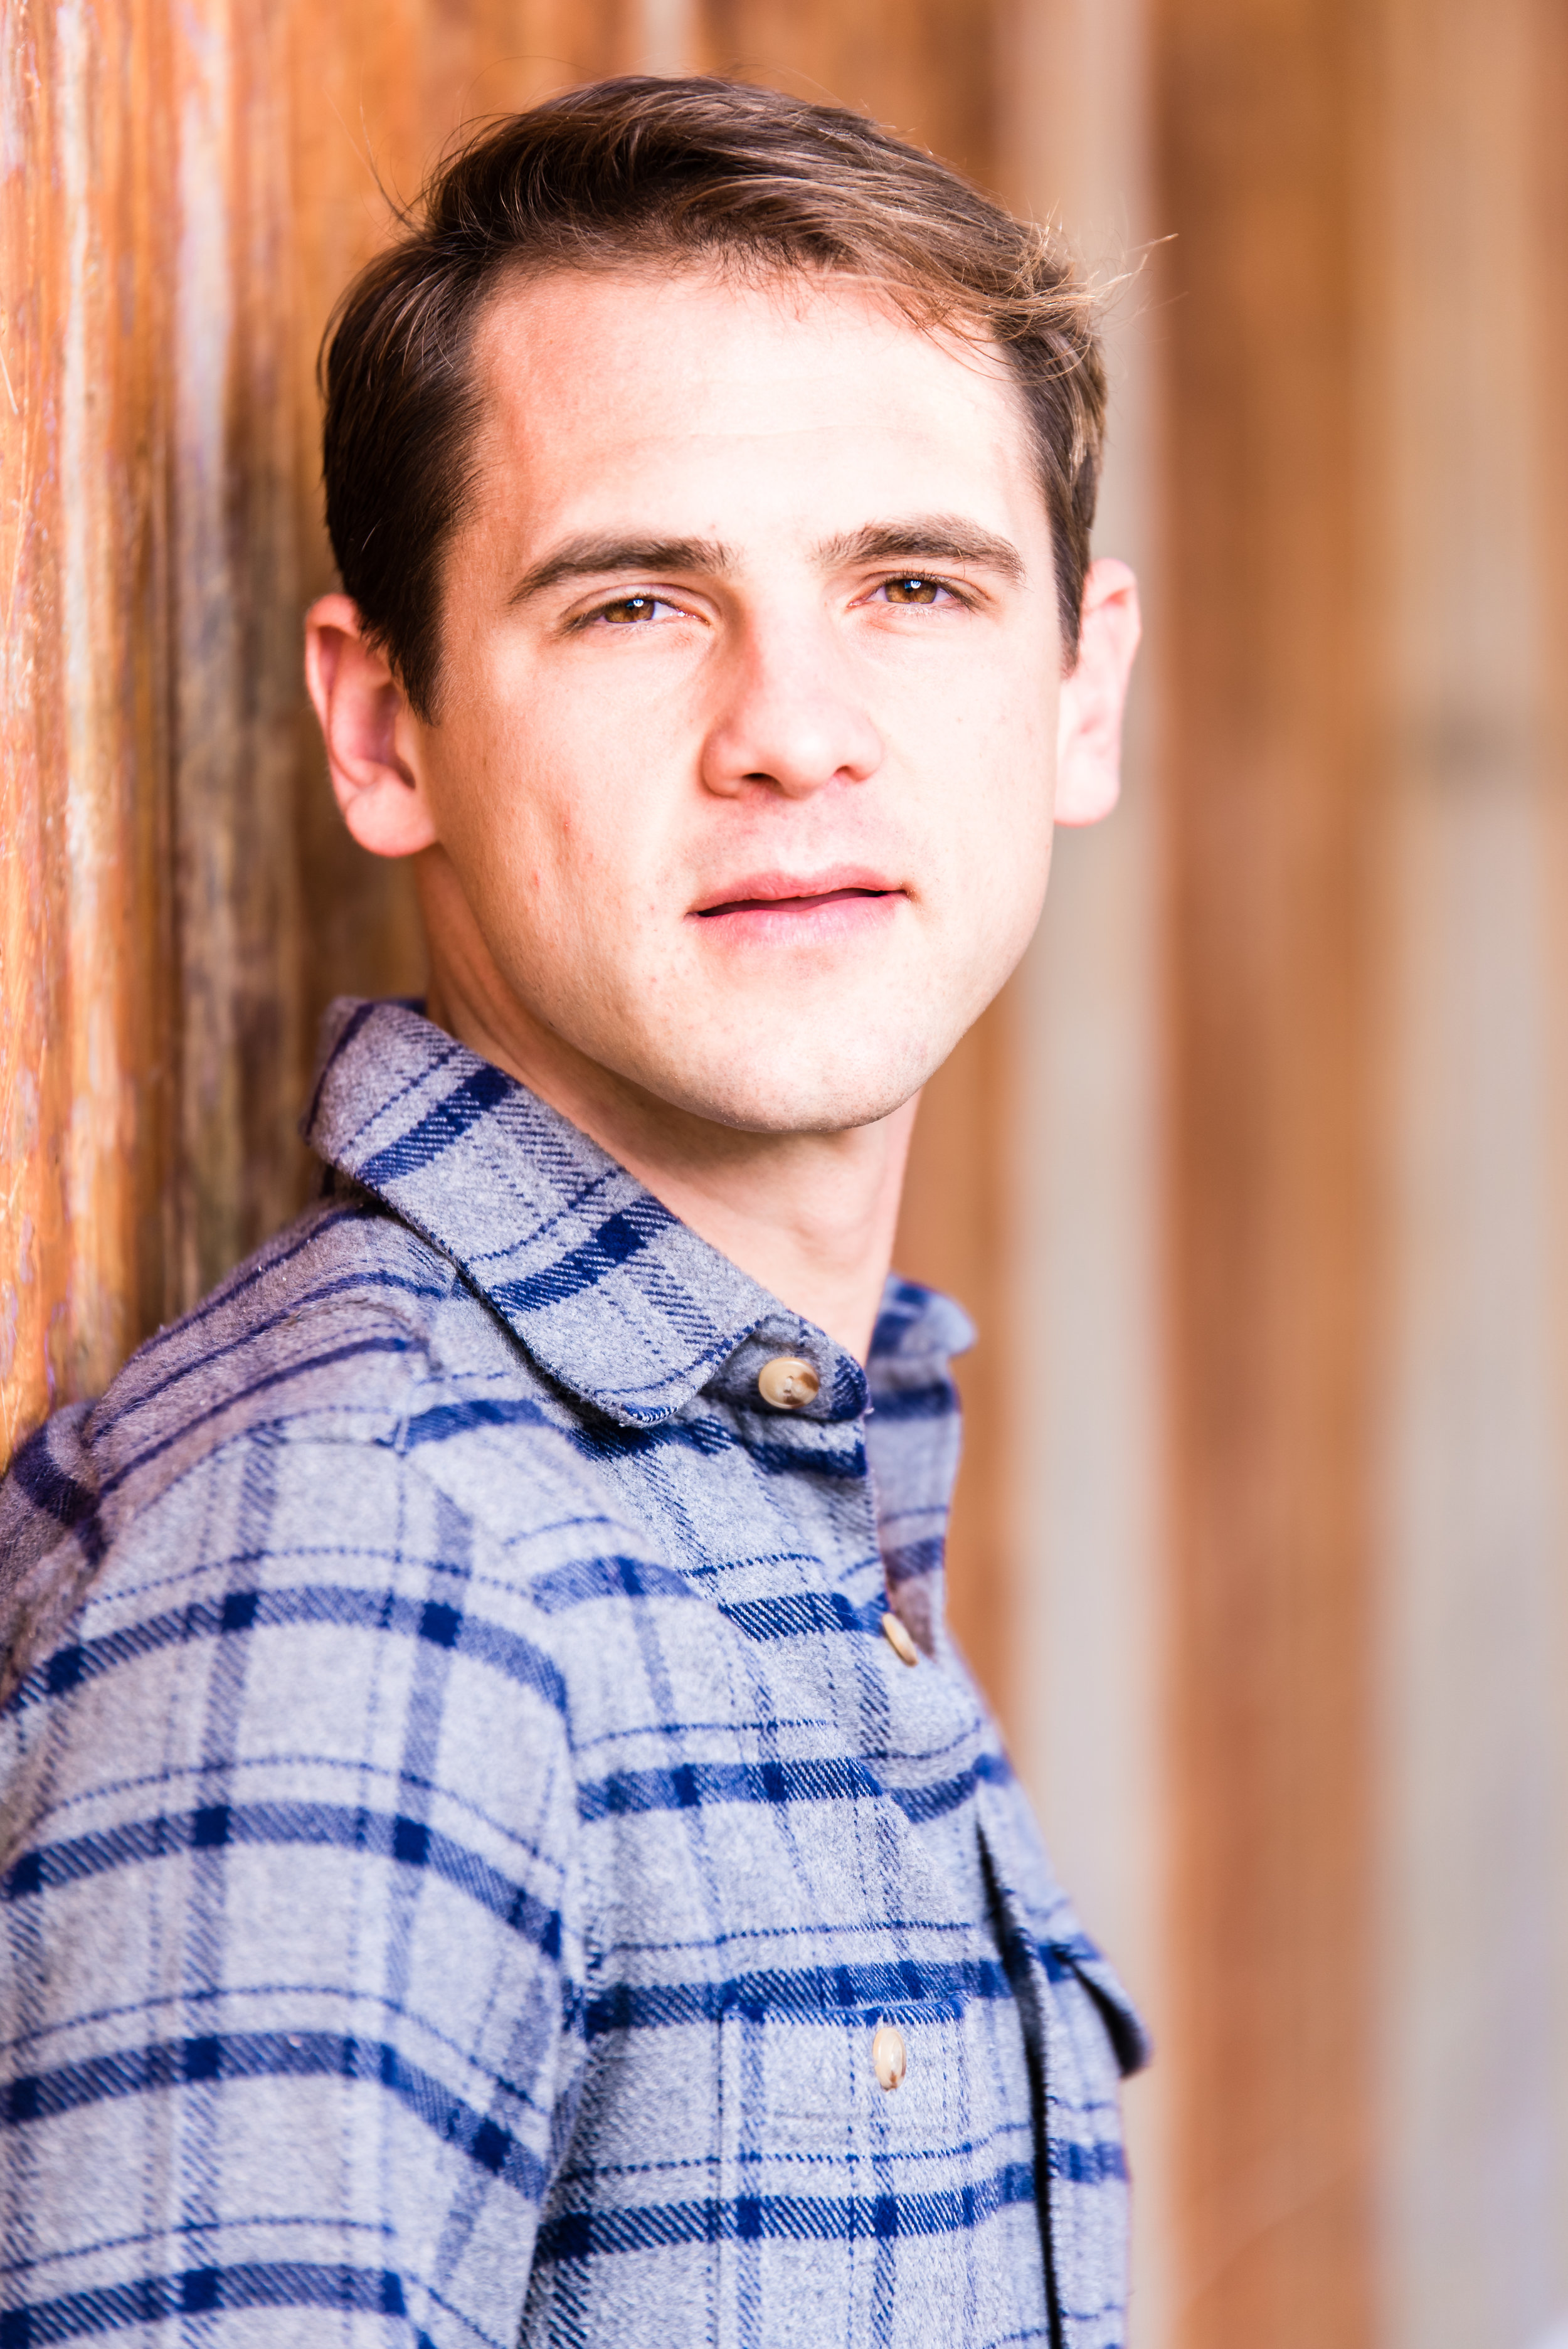 2017_May_21-Nick_DePriest_Portrait_Session-40633.jpg